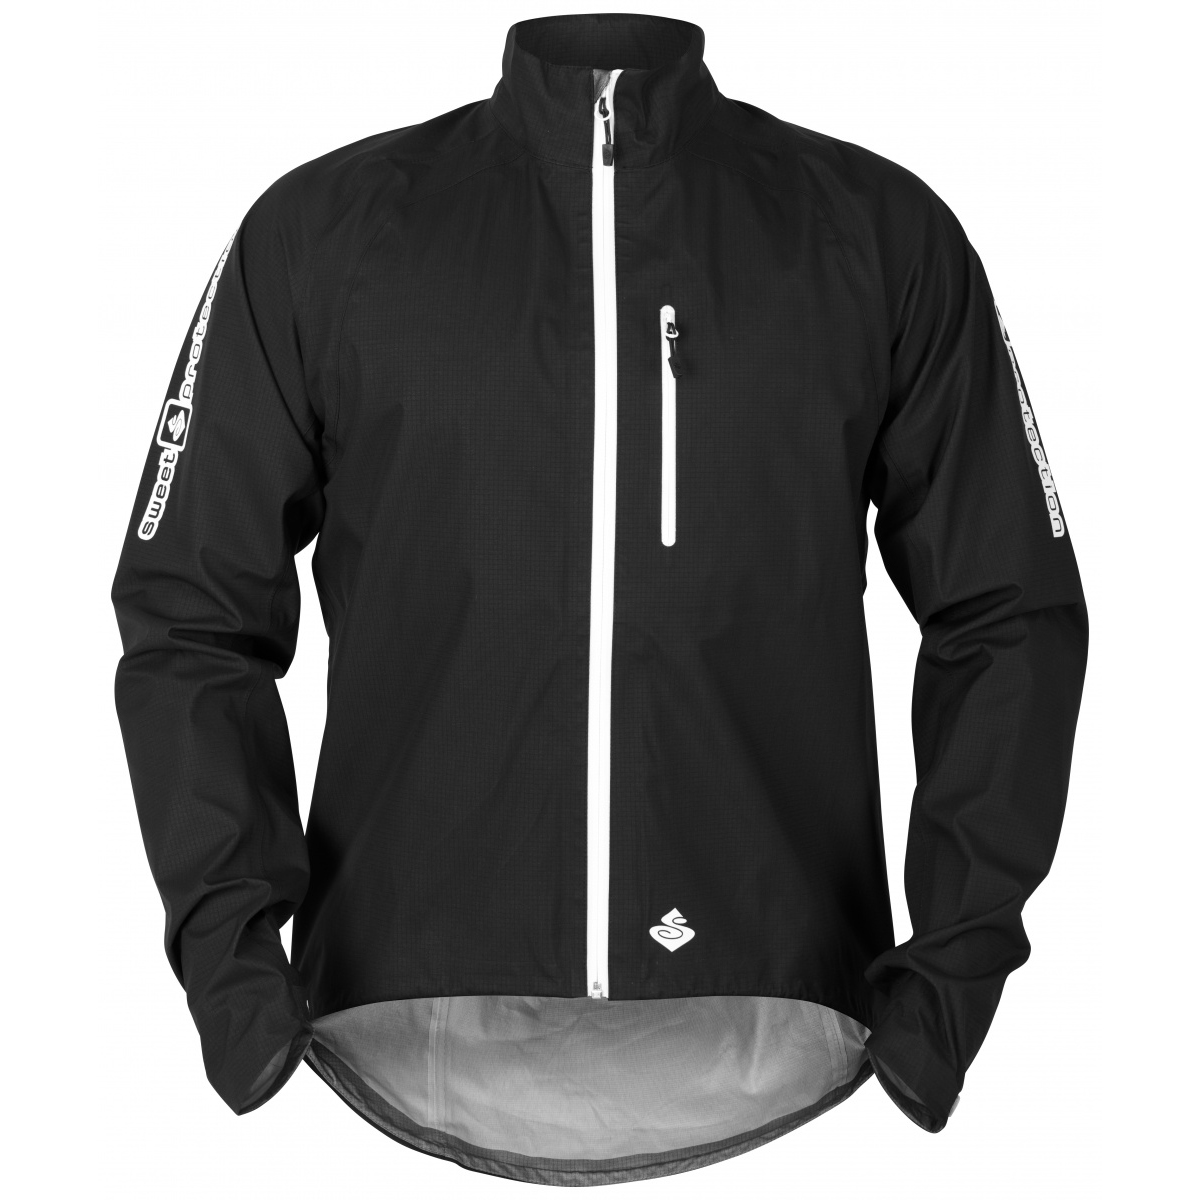 Noah Bodman reviews the Sweet Protection Delirious Jacket for Blister